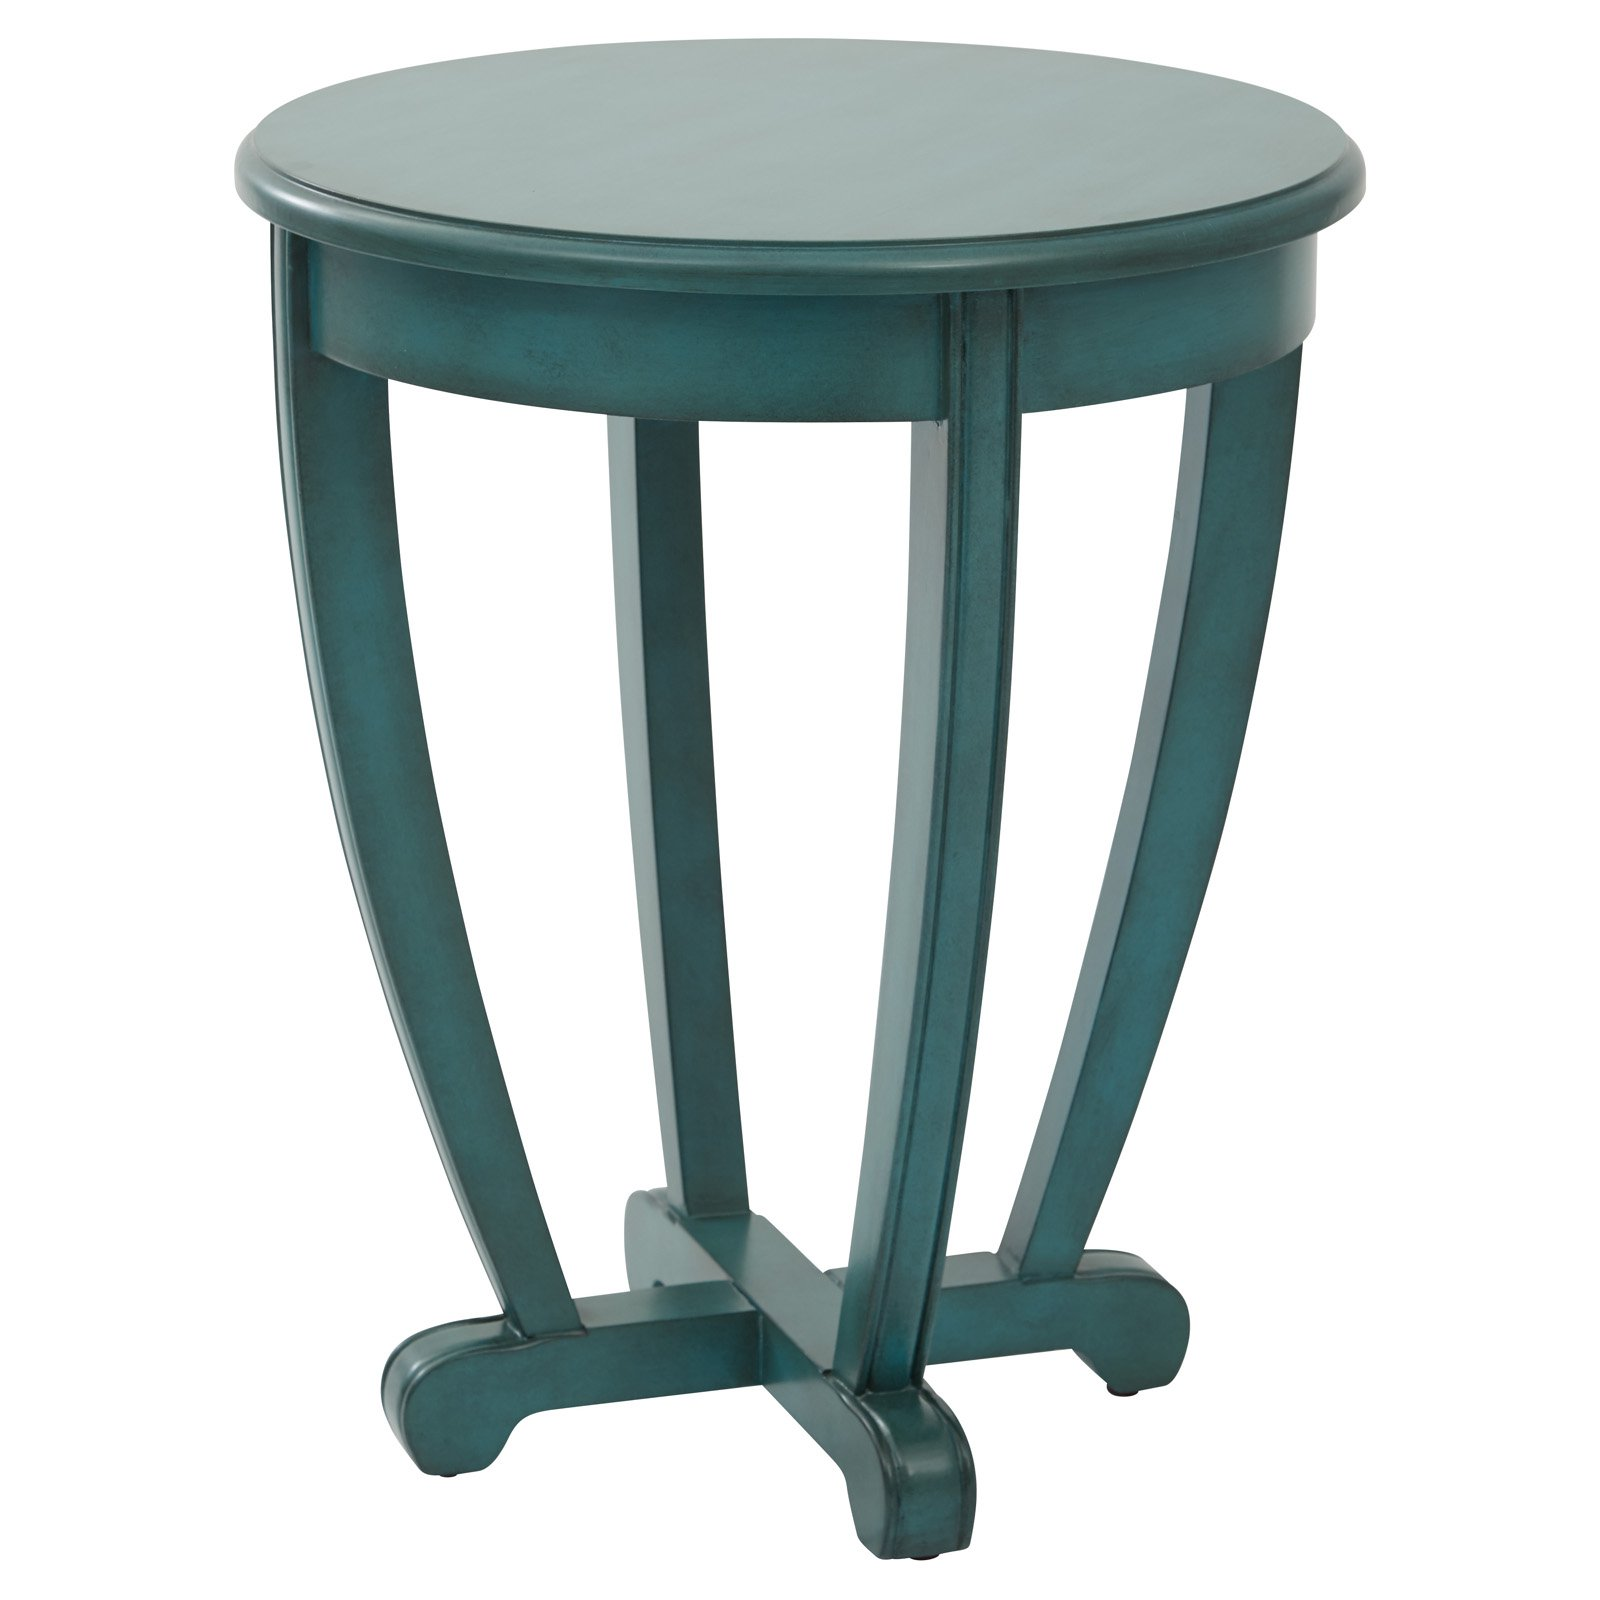 Tifton Round Accent Table Blue Finish